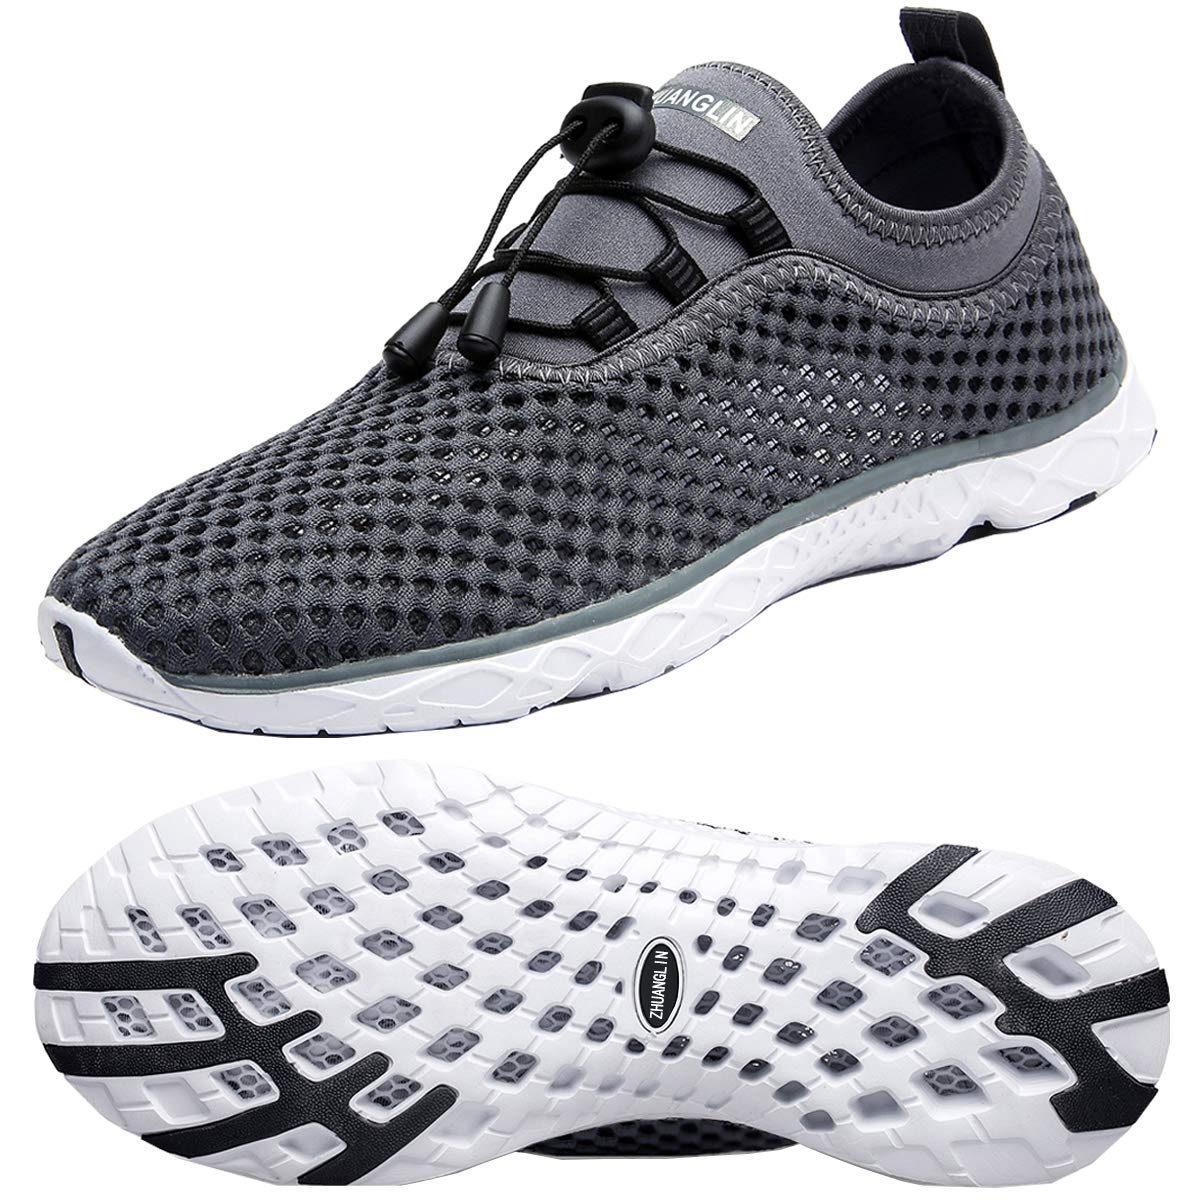 4f2b6889b36e Best Rated in Men s Water Shoes   Helpful Customer Reviews - Amazon.com